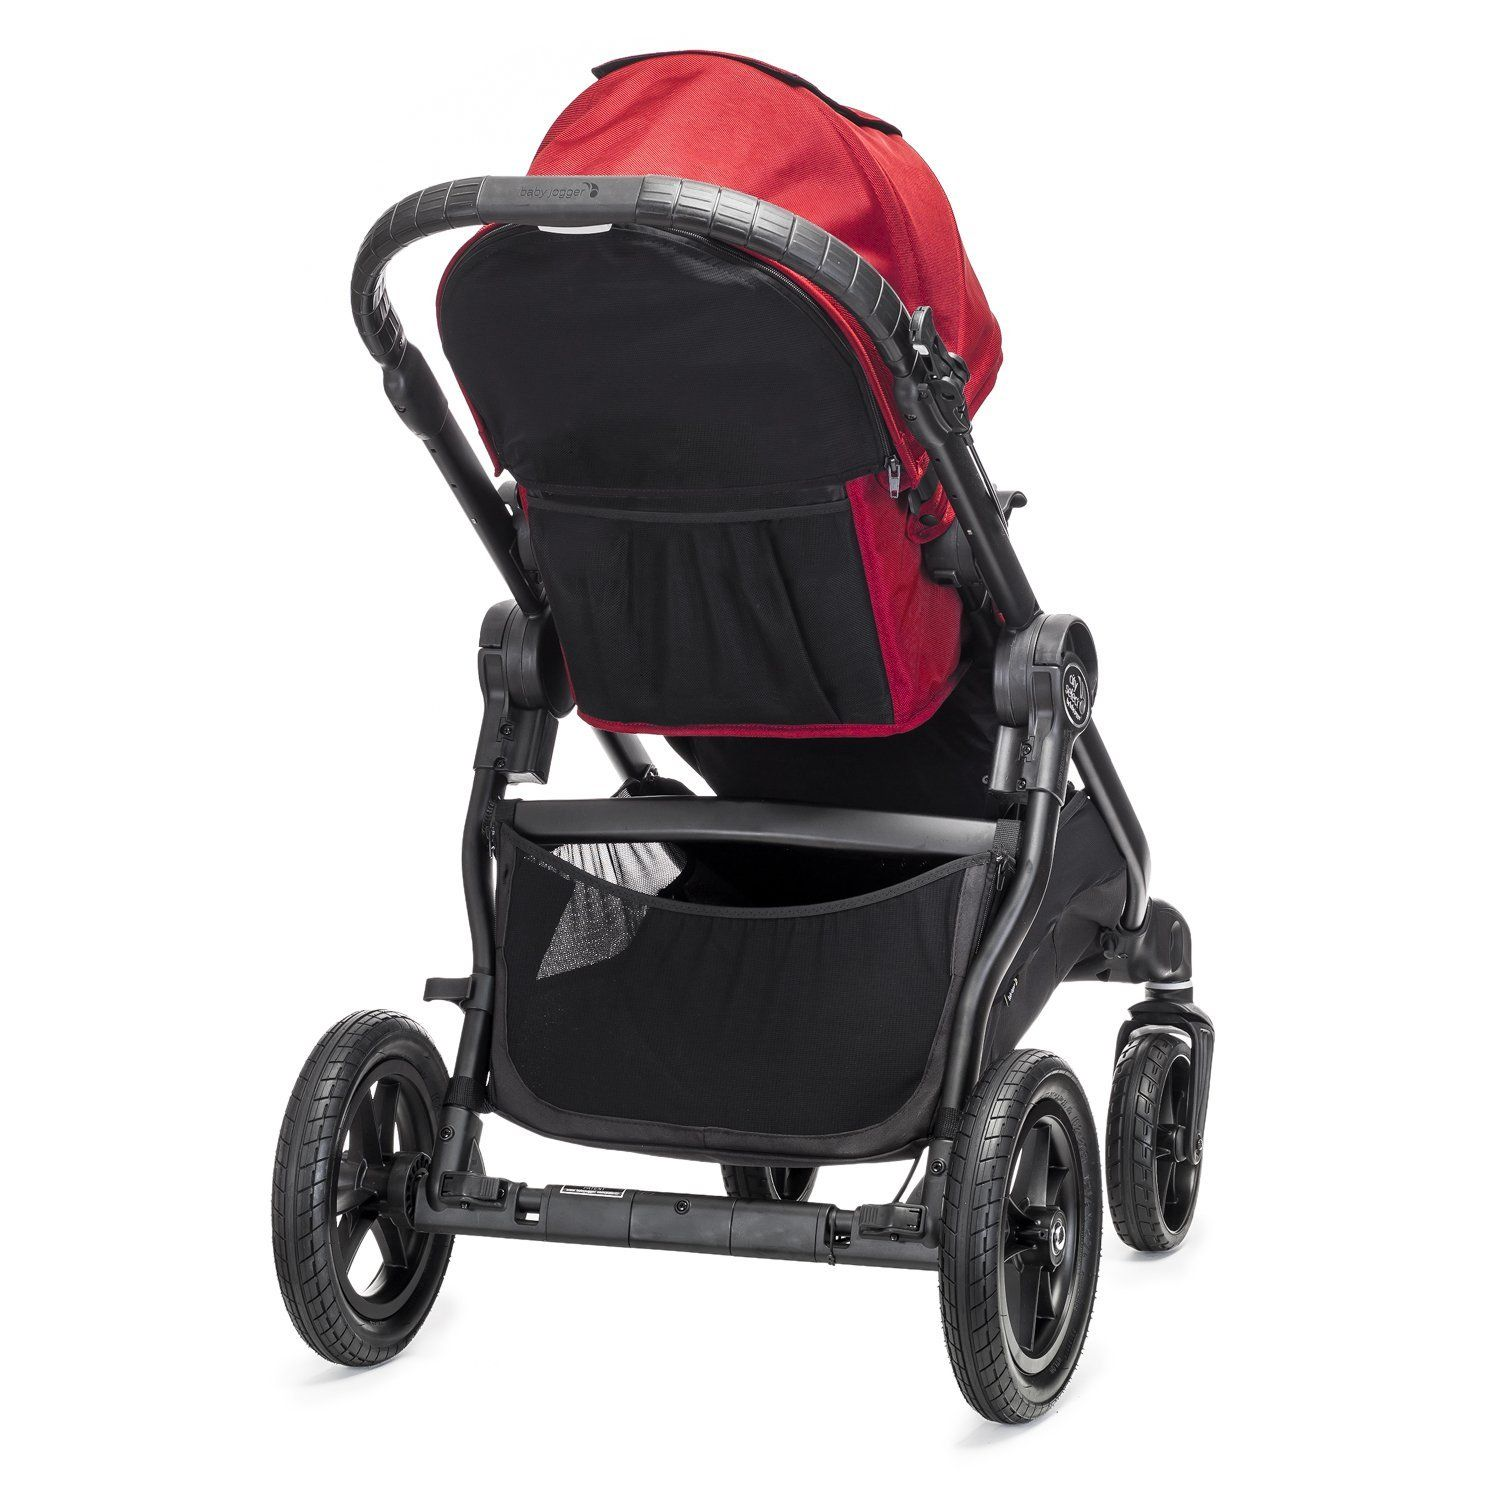 Baby Jogger City Select with Second Seat Review (With